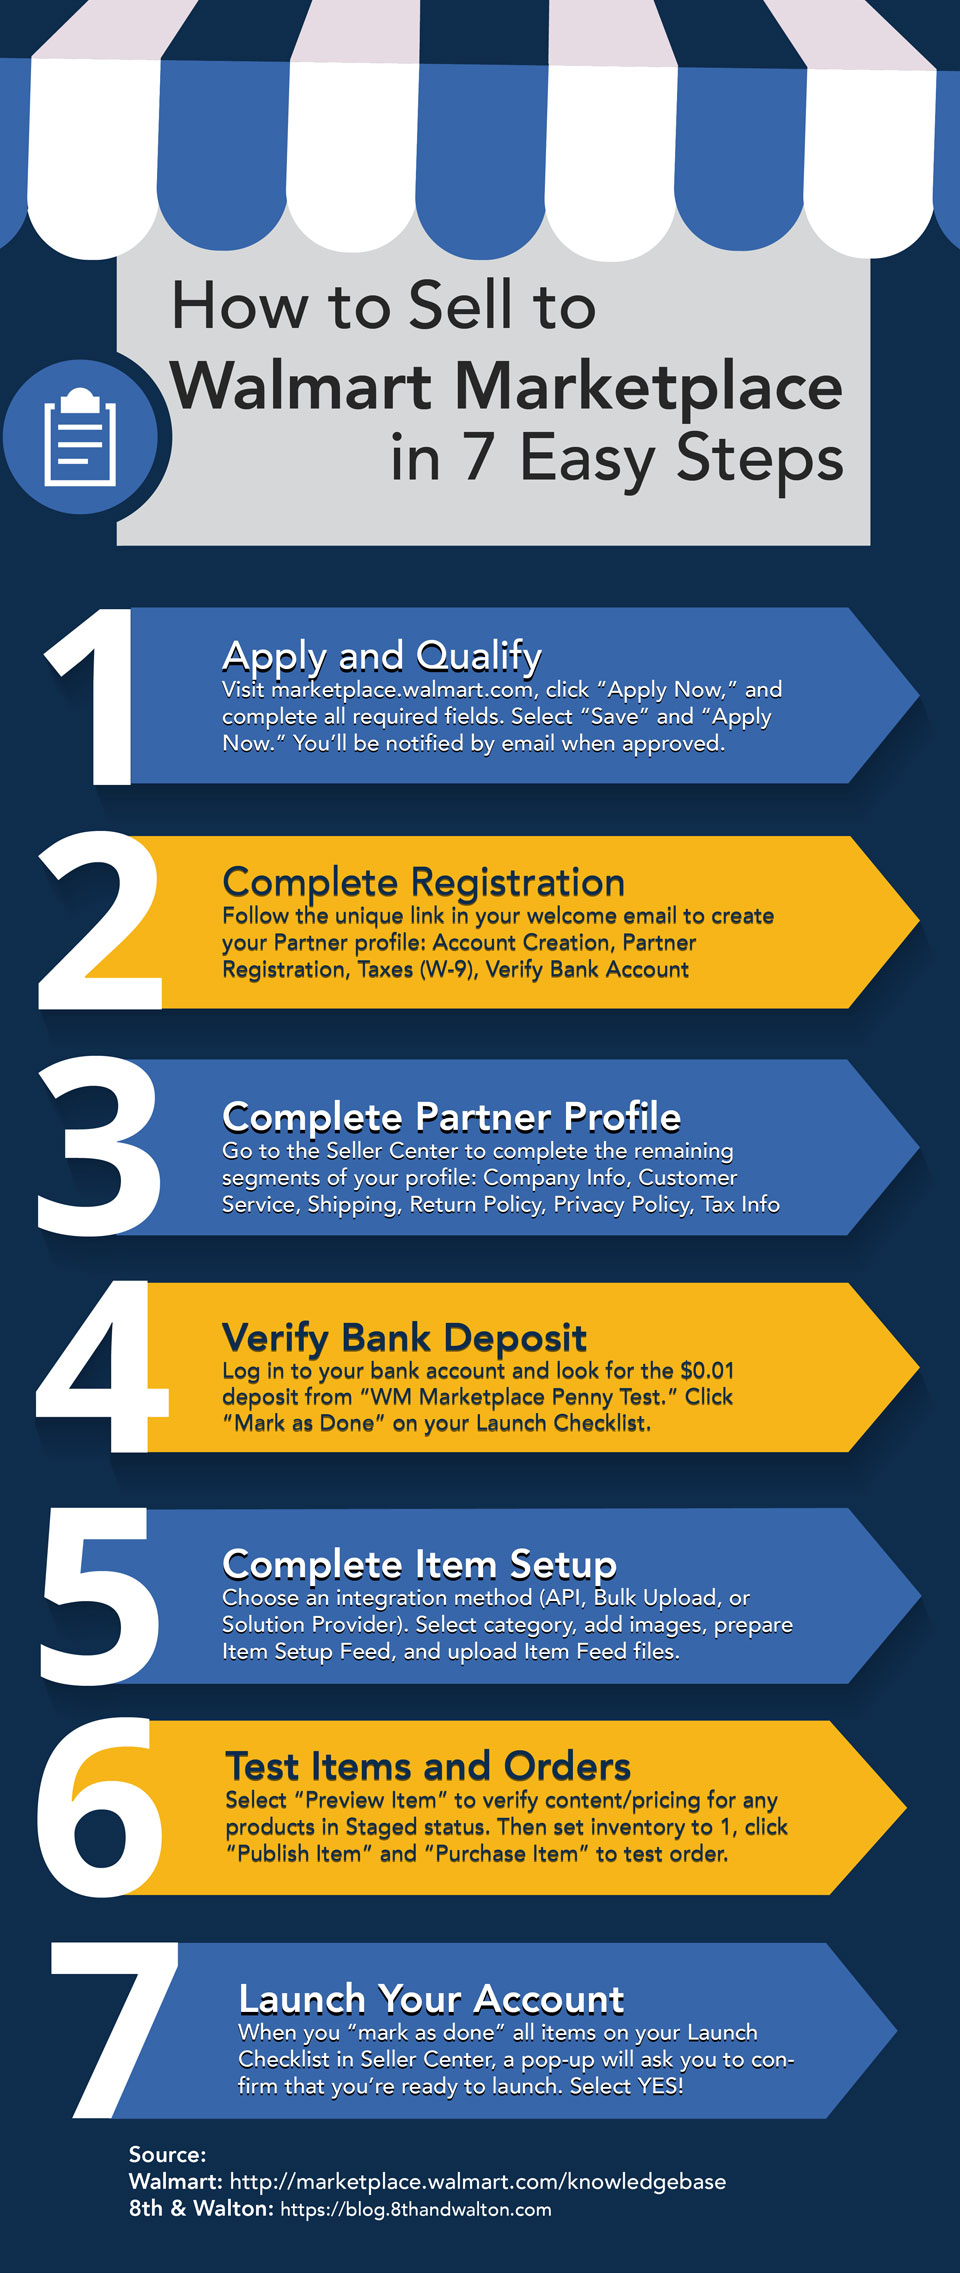 Heres An Overview Of The Process For How To Sell On Walmart Marketplace Feel Free To Share On Your Website With The Code Below